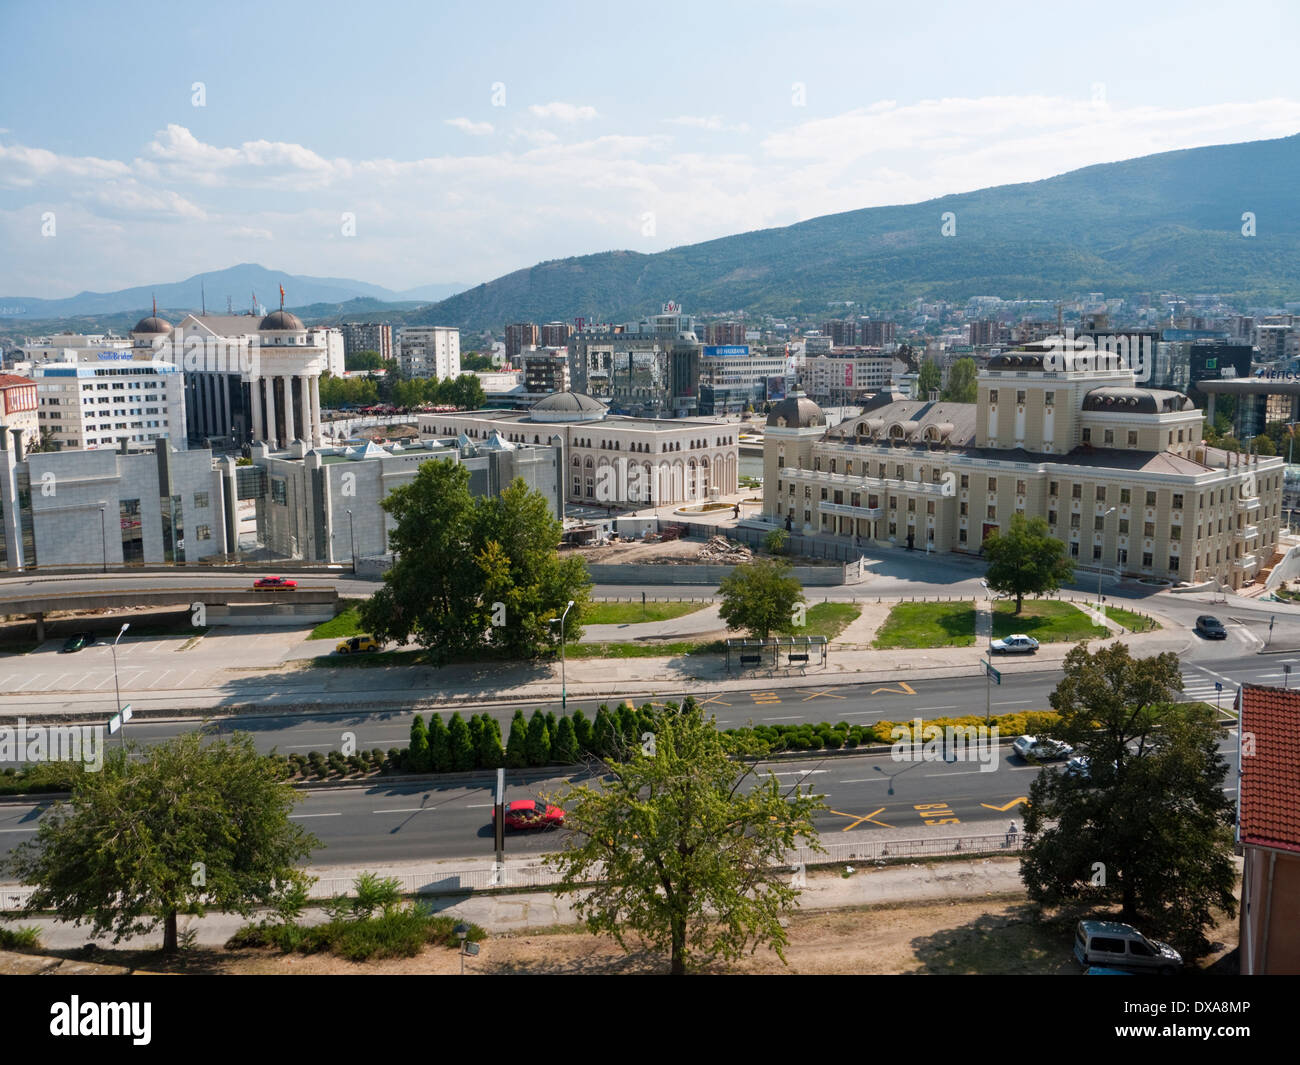 View of Skopje, the capital of Macedonia from the old walls of the Kale Fortress - Stock Image